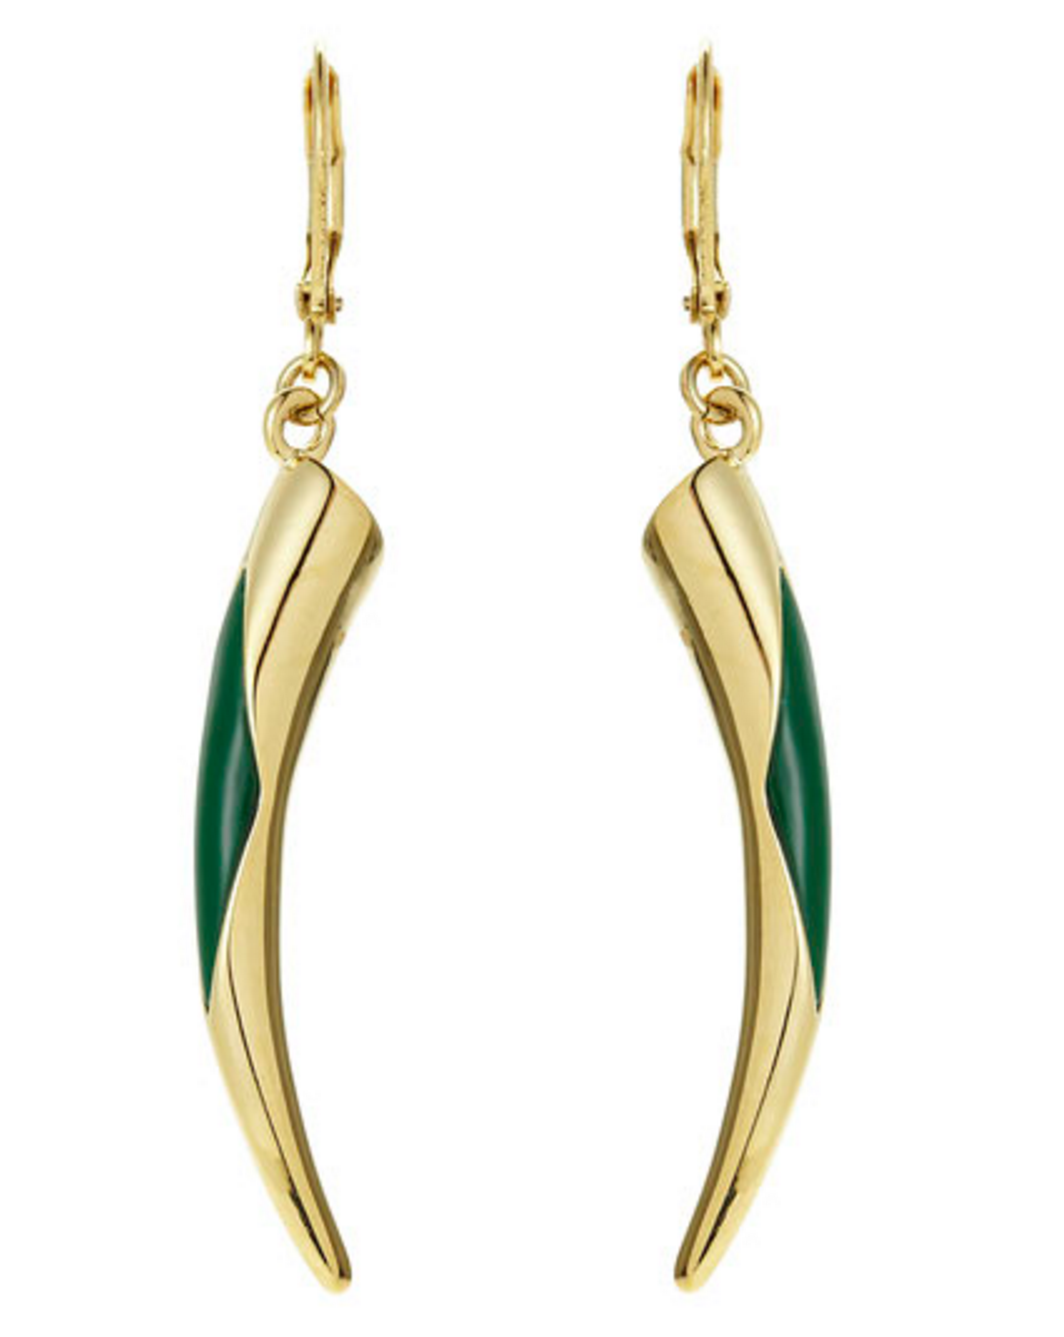 Vince Camuto Gold-Tone Horn Earrings